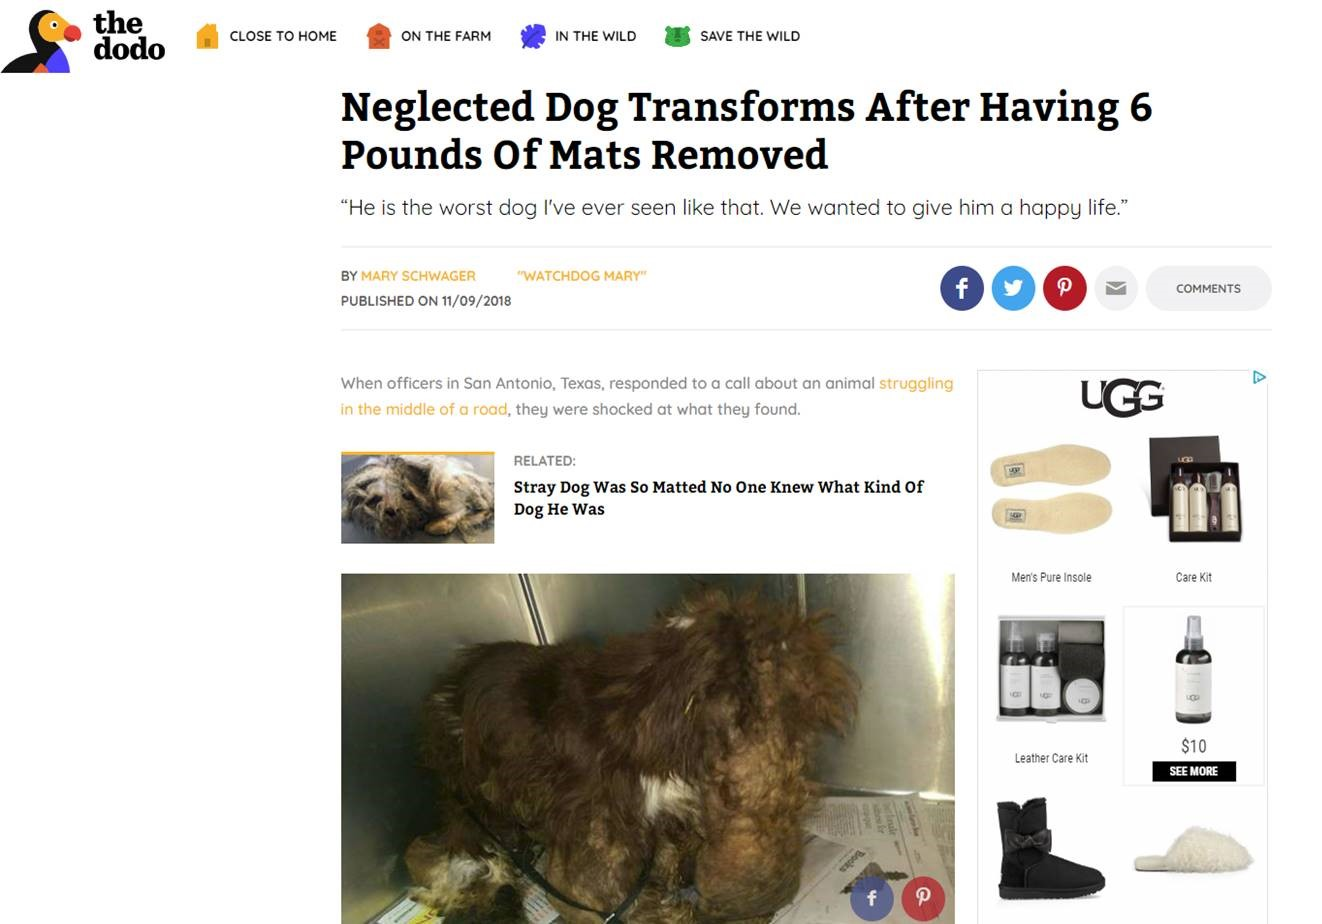 Animal control officers could not even tell the dog's gender